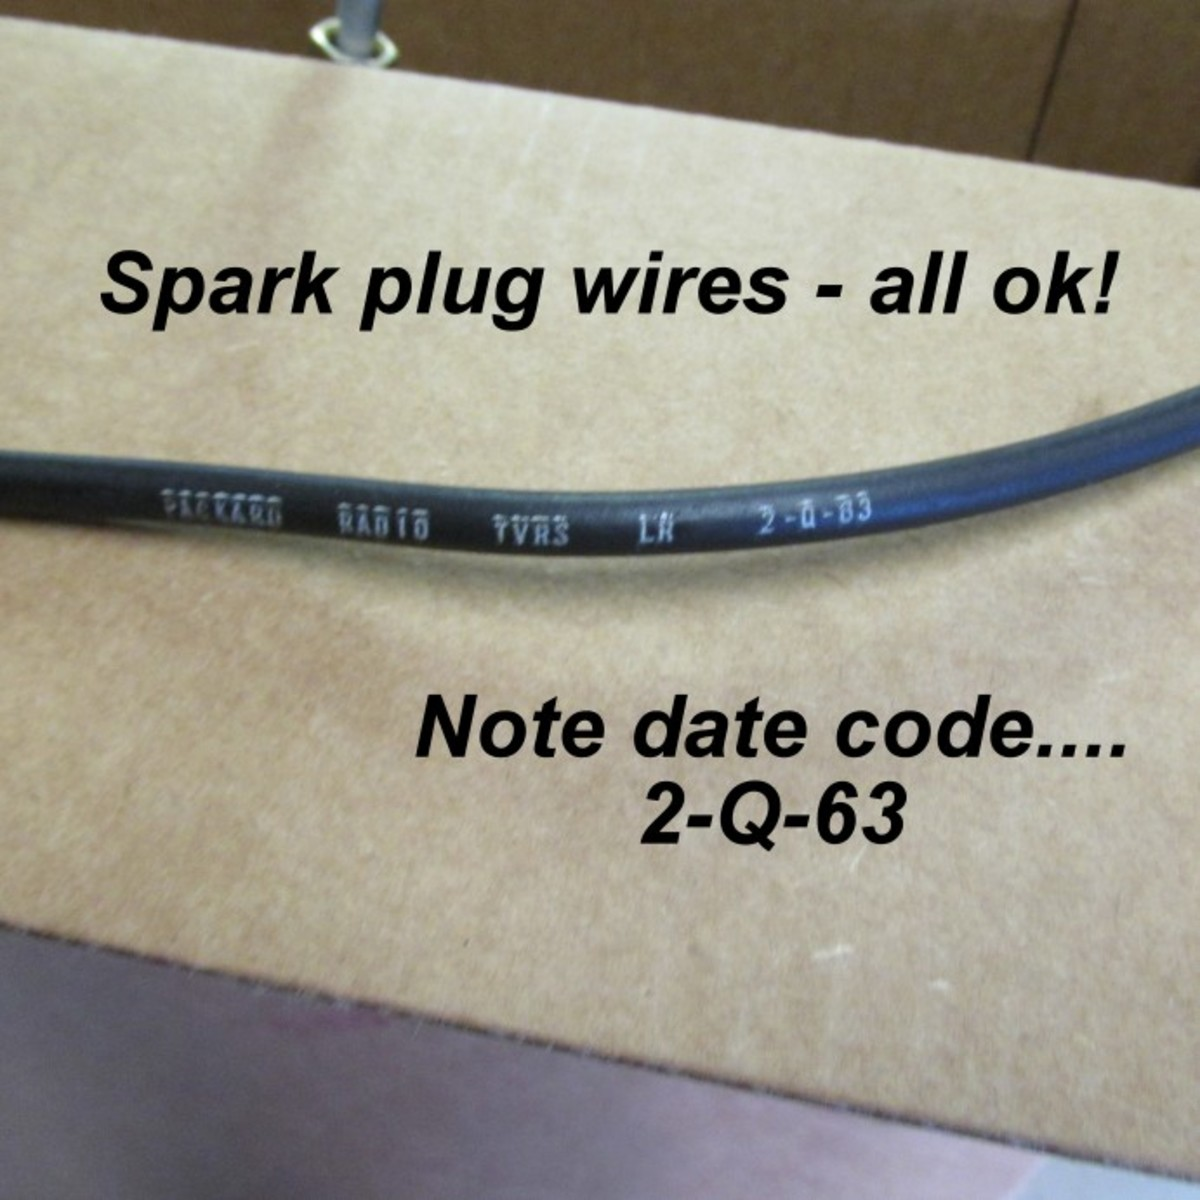 After the wires were cleaned, they were reinstalled. Leidich found one plug wire with a 1962 date code - the factory probably installed this leftover because it used whatever was on hand to push cars along the assembly line as quickly as possible.